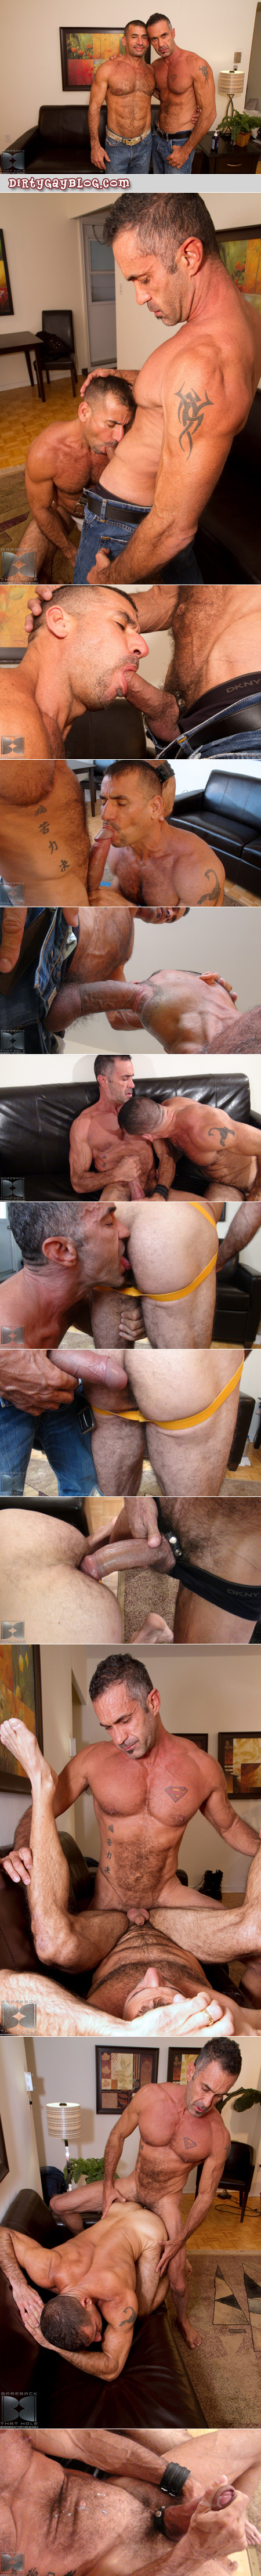 Ripped, muscular, hairy-chested, salt-and-pepper Daddy fucks an older pig bottom raw with his 10-inch uncut dick.